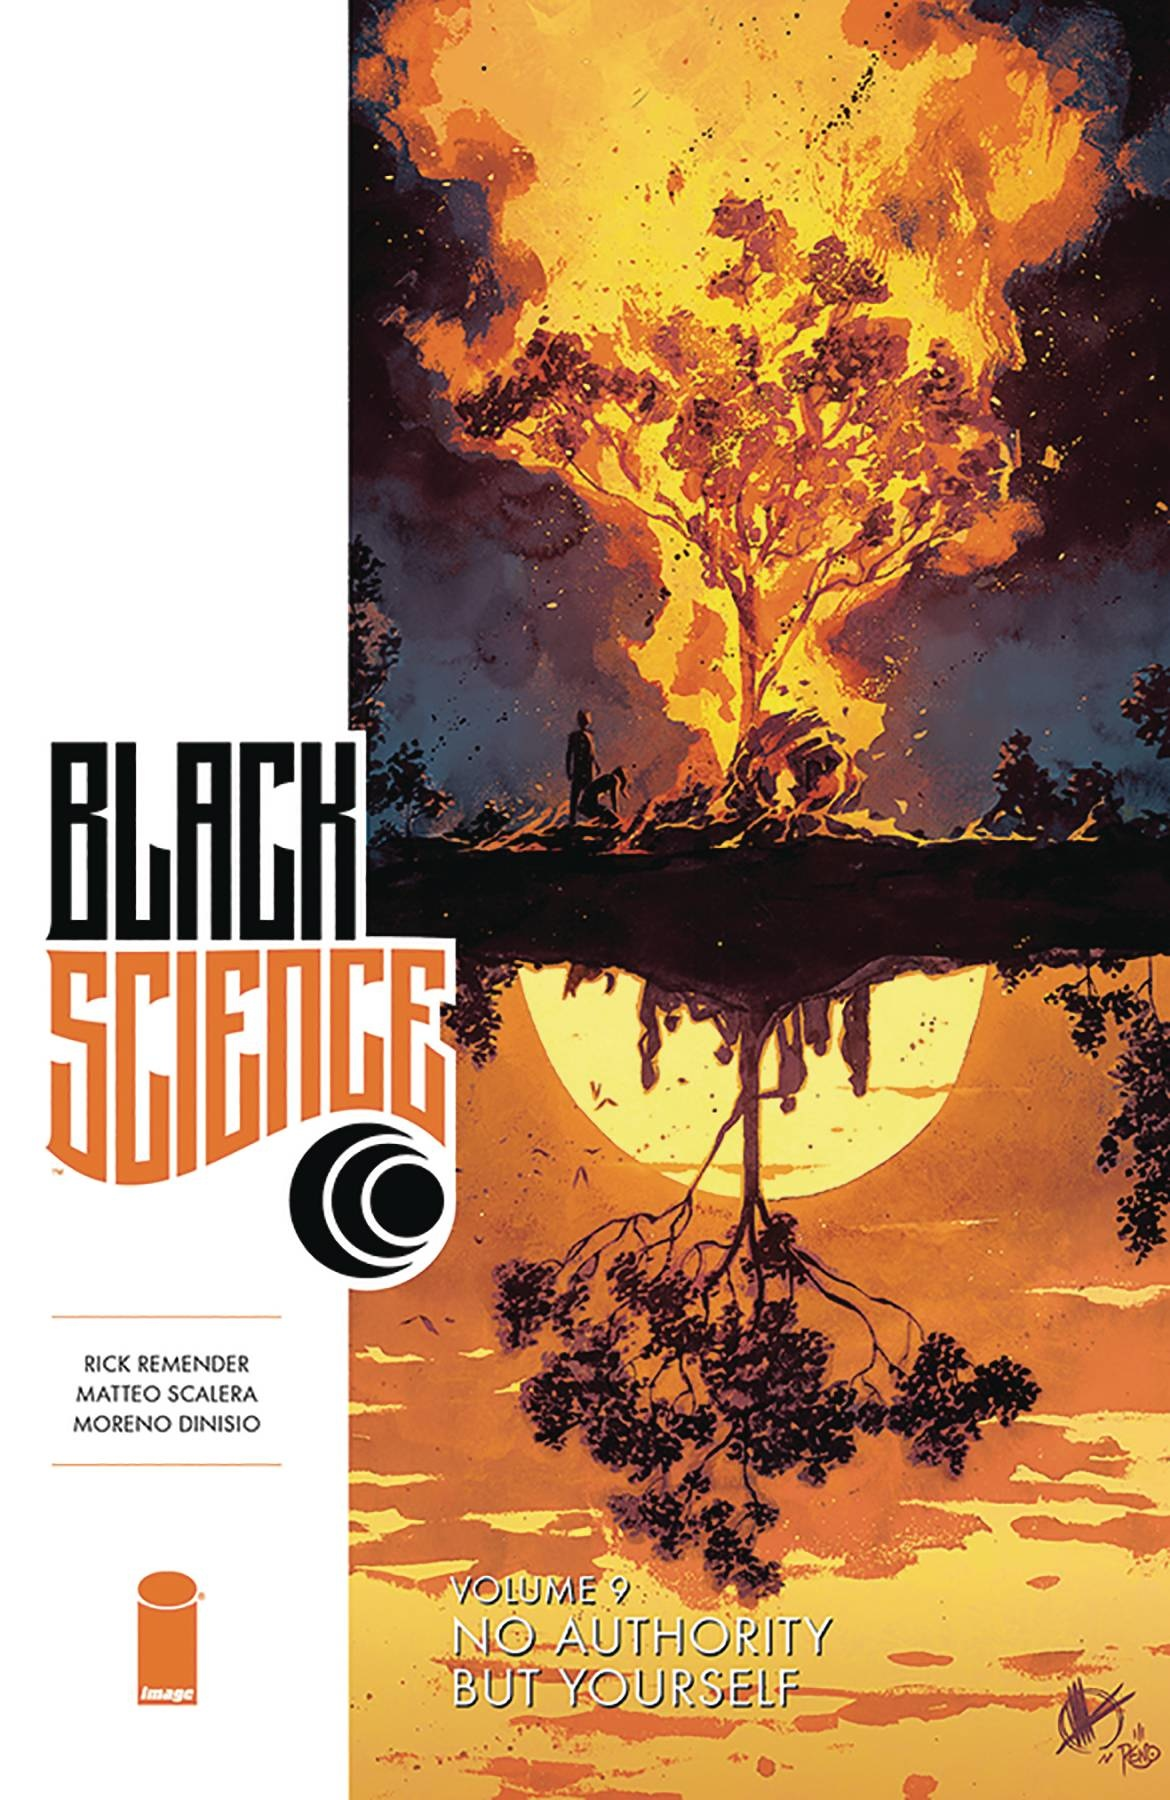 Black Science Vol 9 TP: No Authority But Yourself